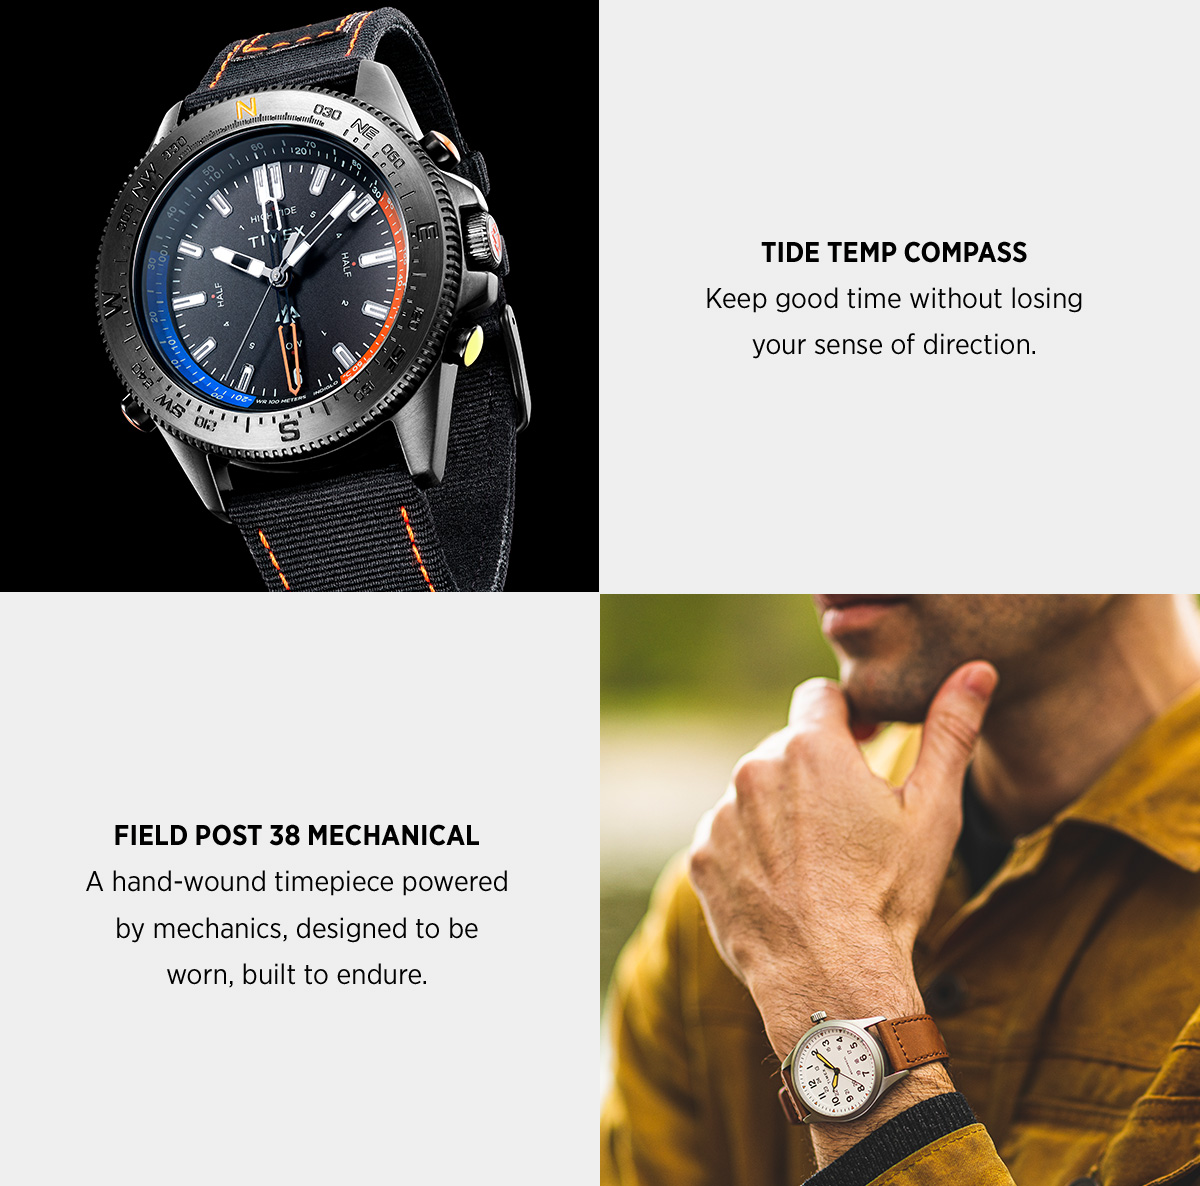 TIDE TEMP COMPASS | Keep good time without losing your sense of direction | FIELD POST 38 MECHANICAL | A hand wound timepiece powered by mechanics, designed to be worn, built to endure.